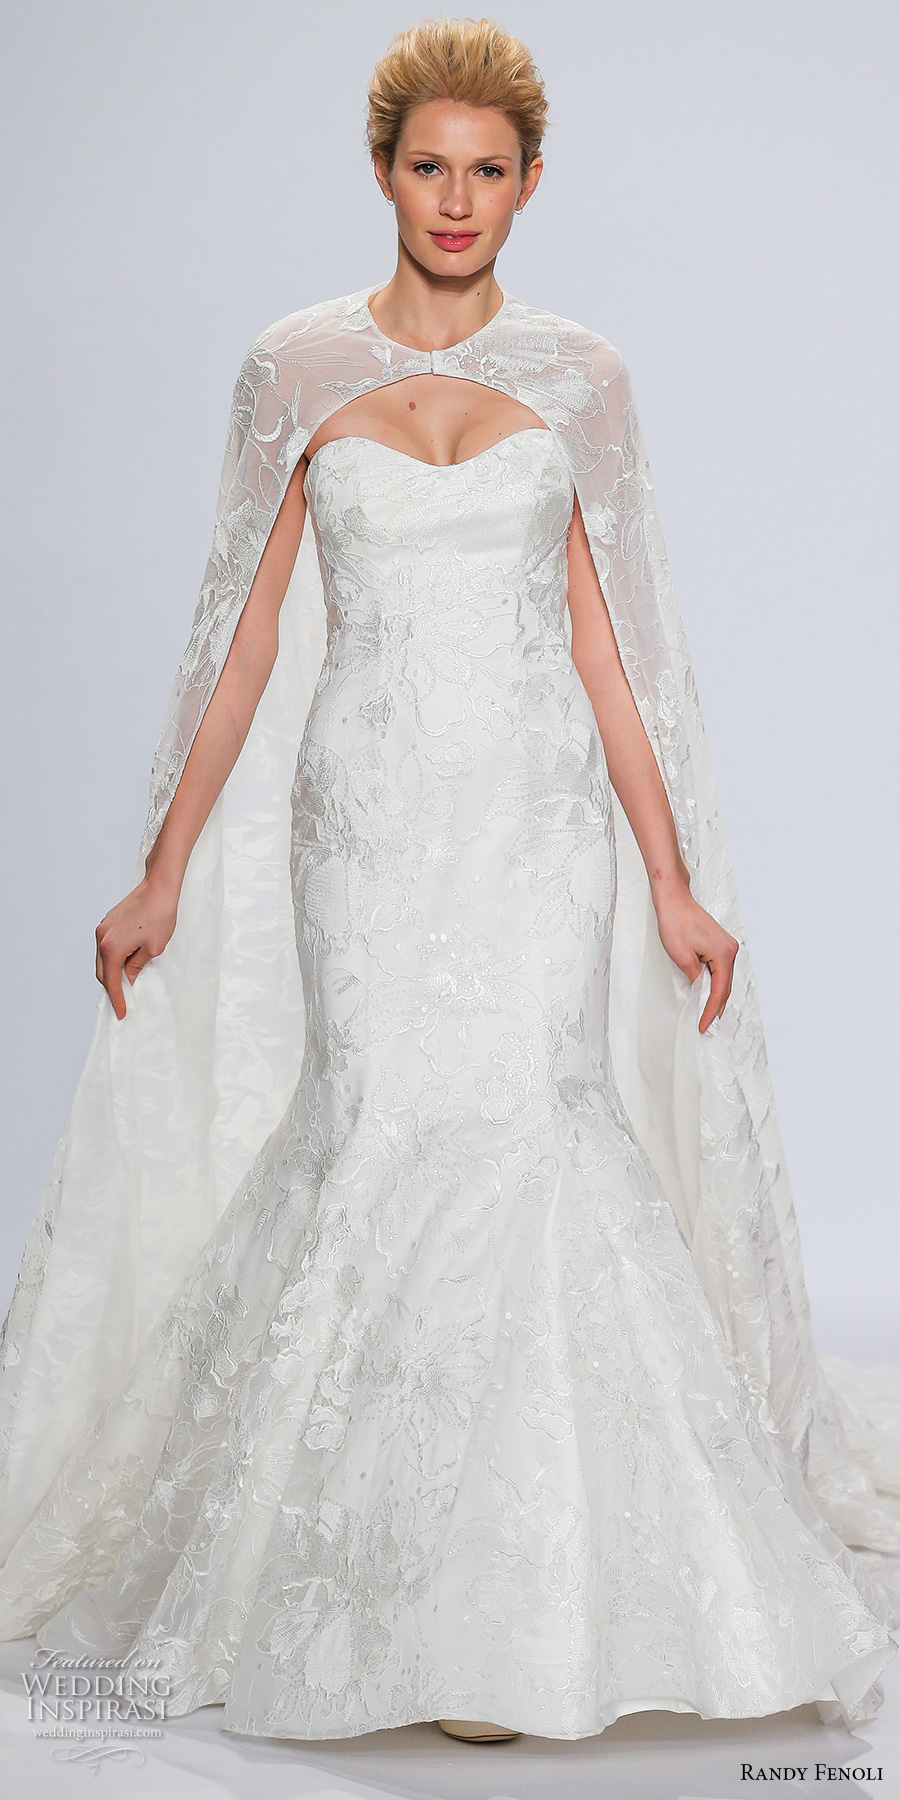 randy fenoli spring 2018 bridal strapless semi sweetheart neckline full embellished bodice elegant mermaid wedding dress full cape (16) mv